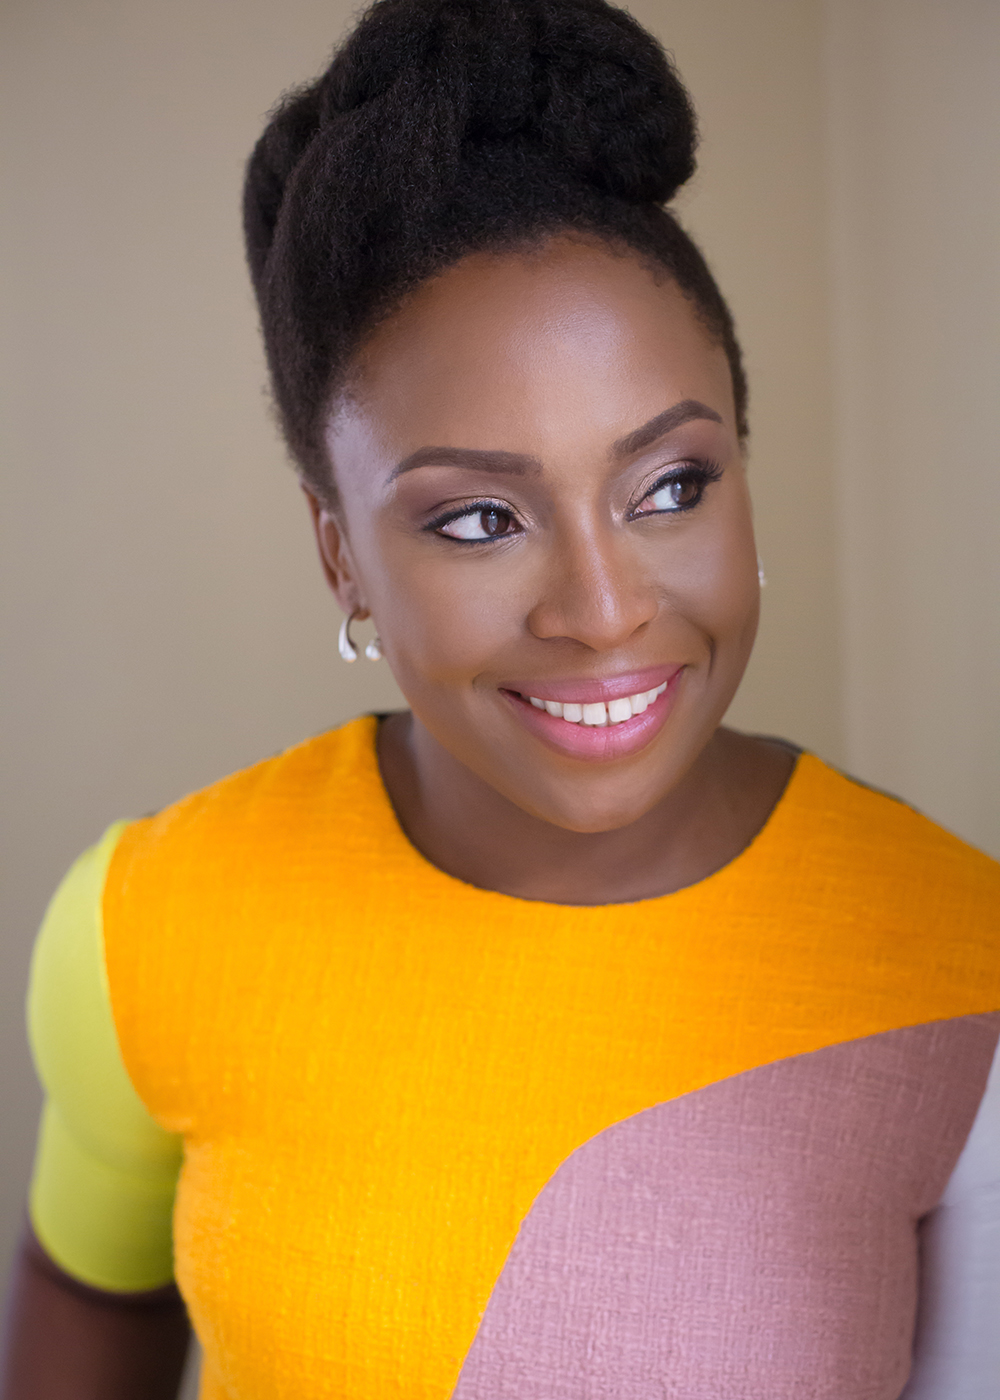 Williams College  Chimamanda Ngozi Adichie is the leading African writer of her generation  Her work has appeared in various publications  and has been translated into over